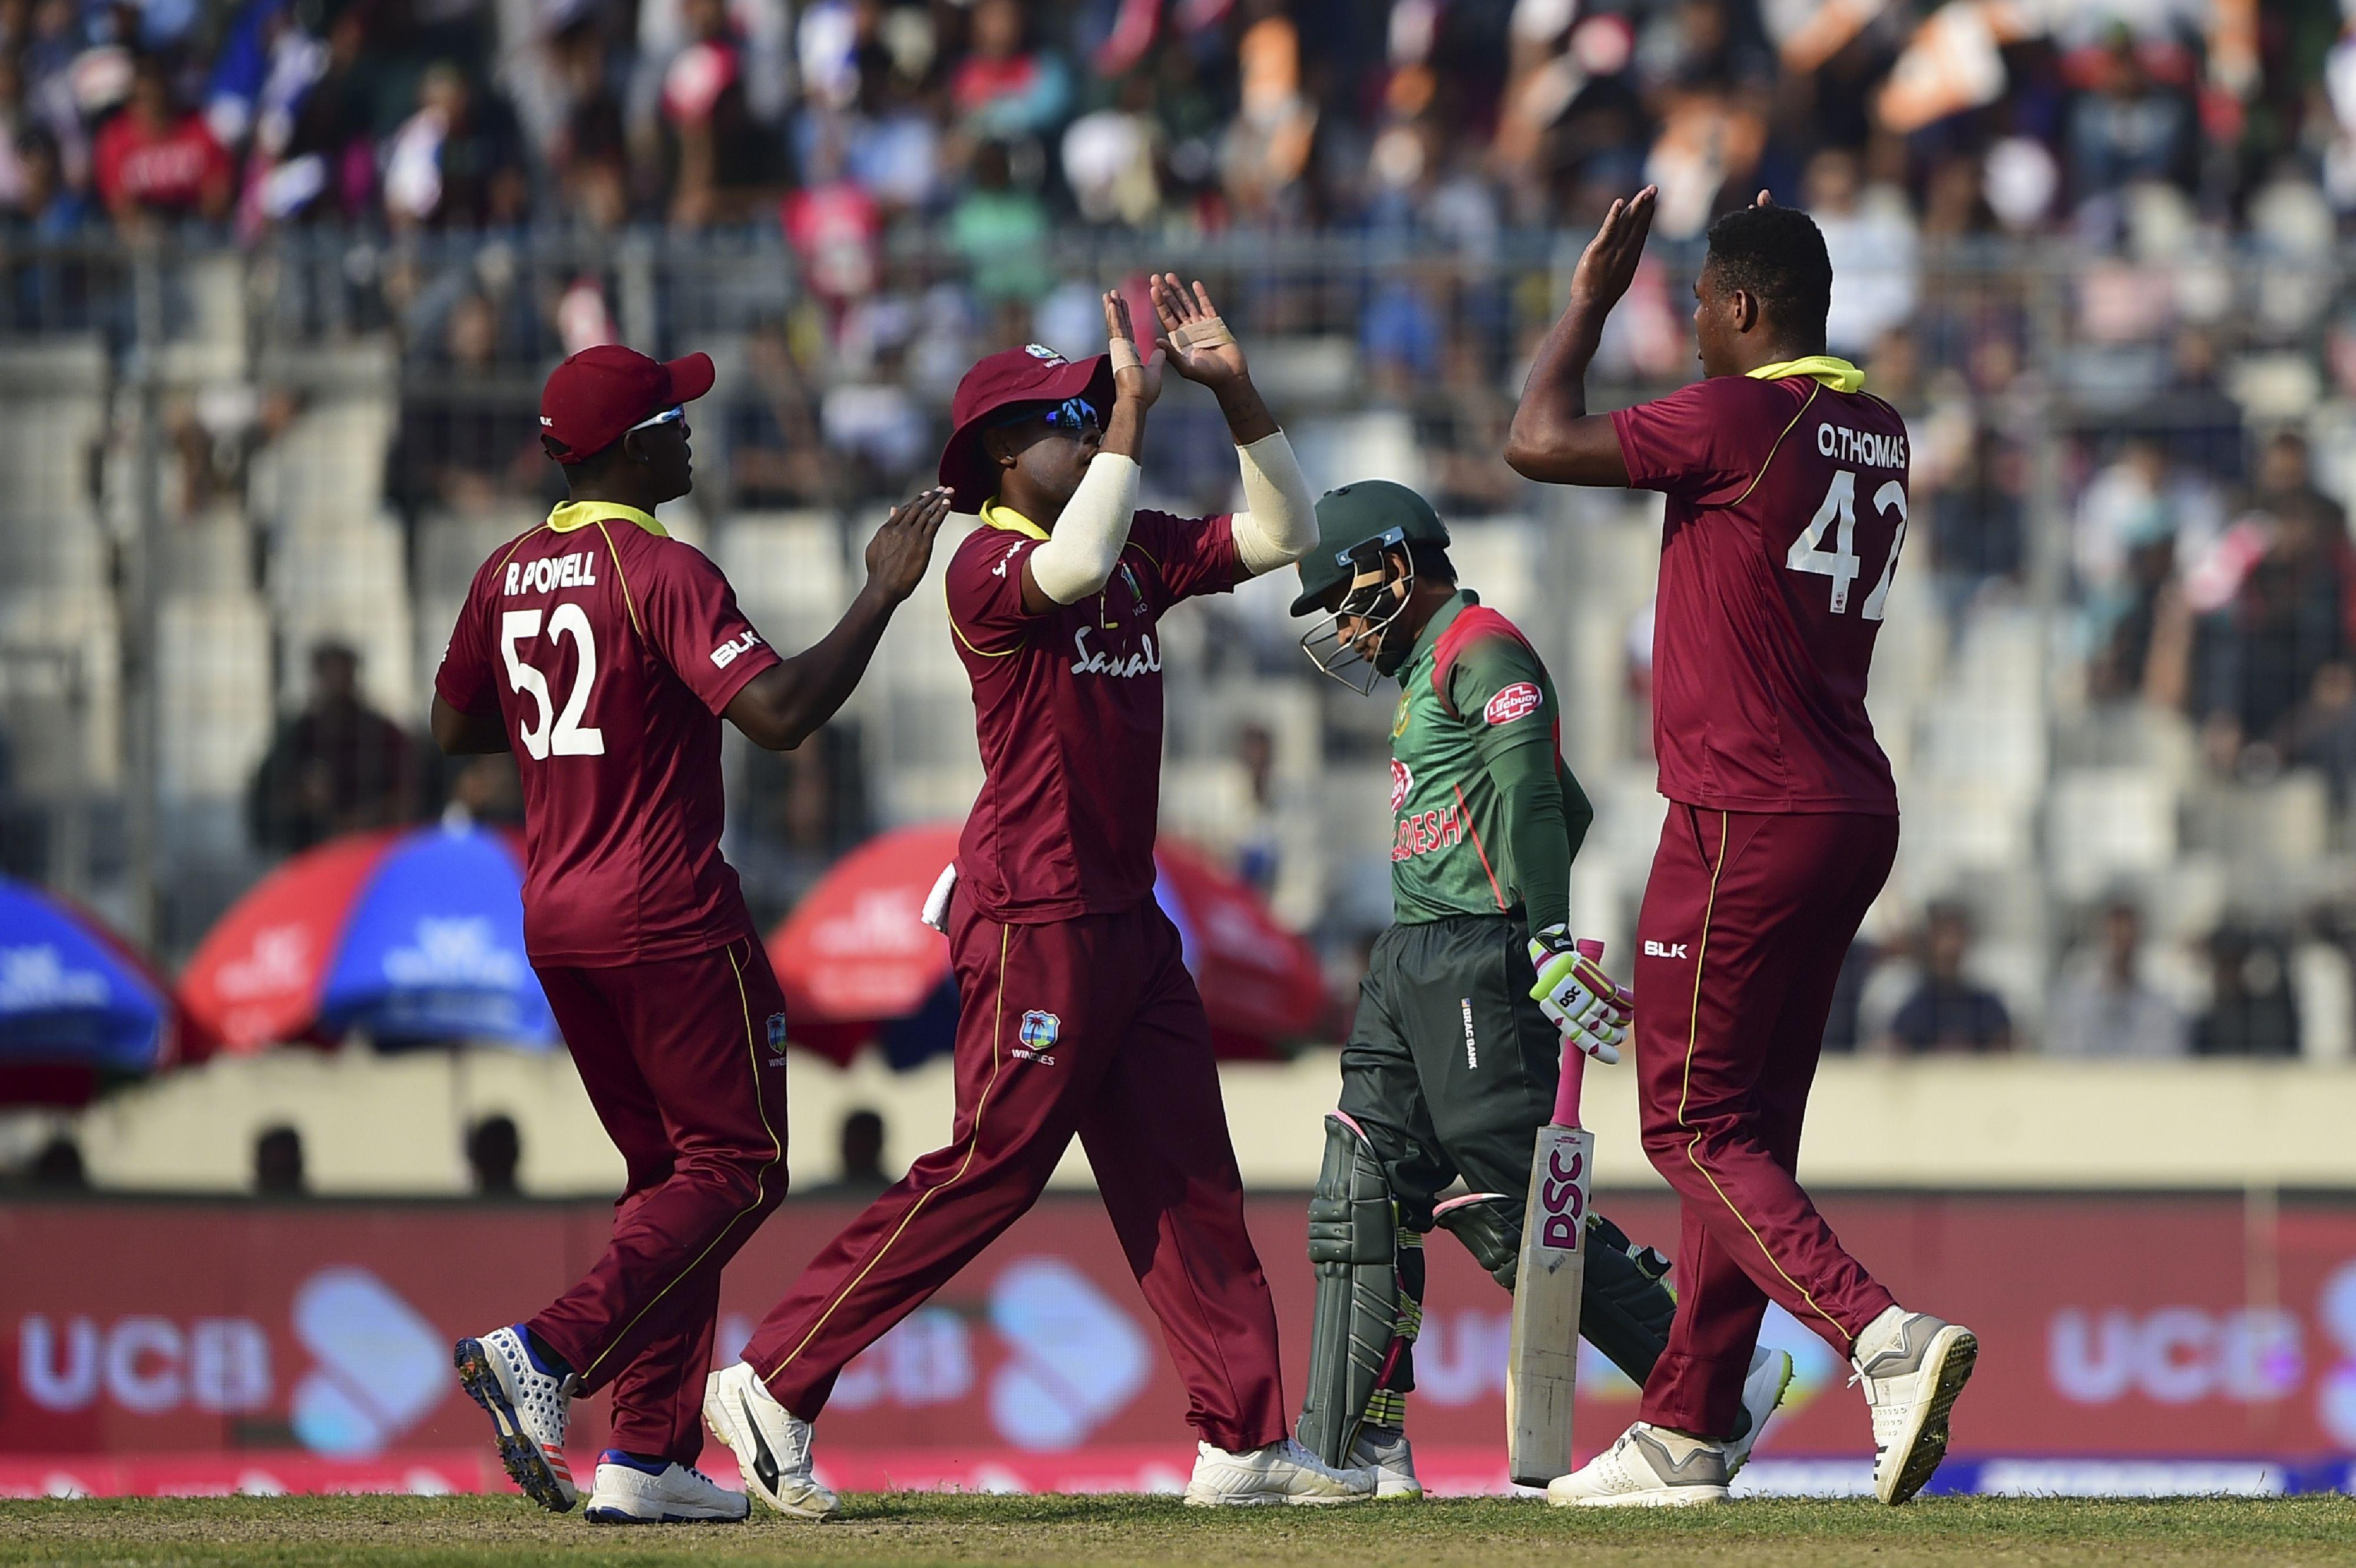 West Indies take on Bangladesh in their second ODI